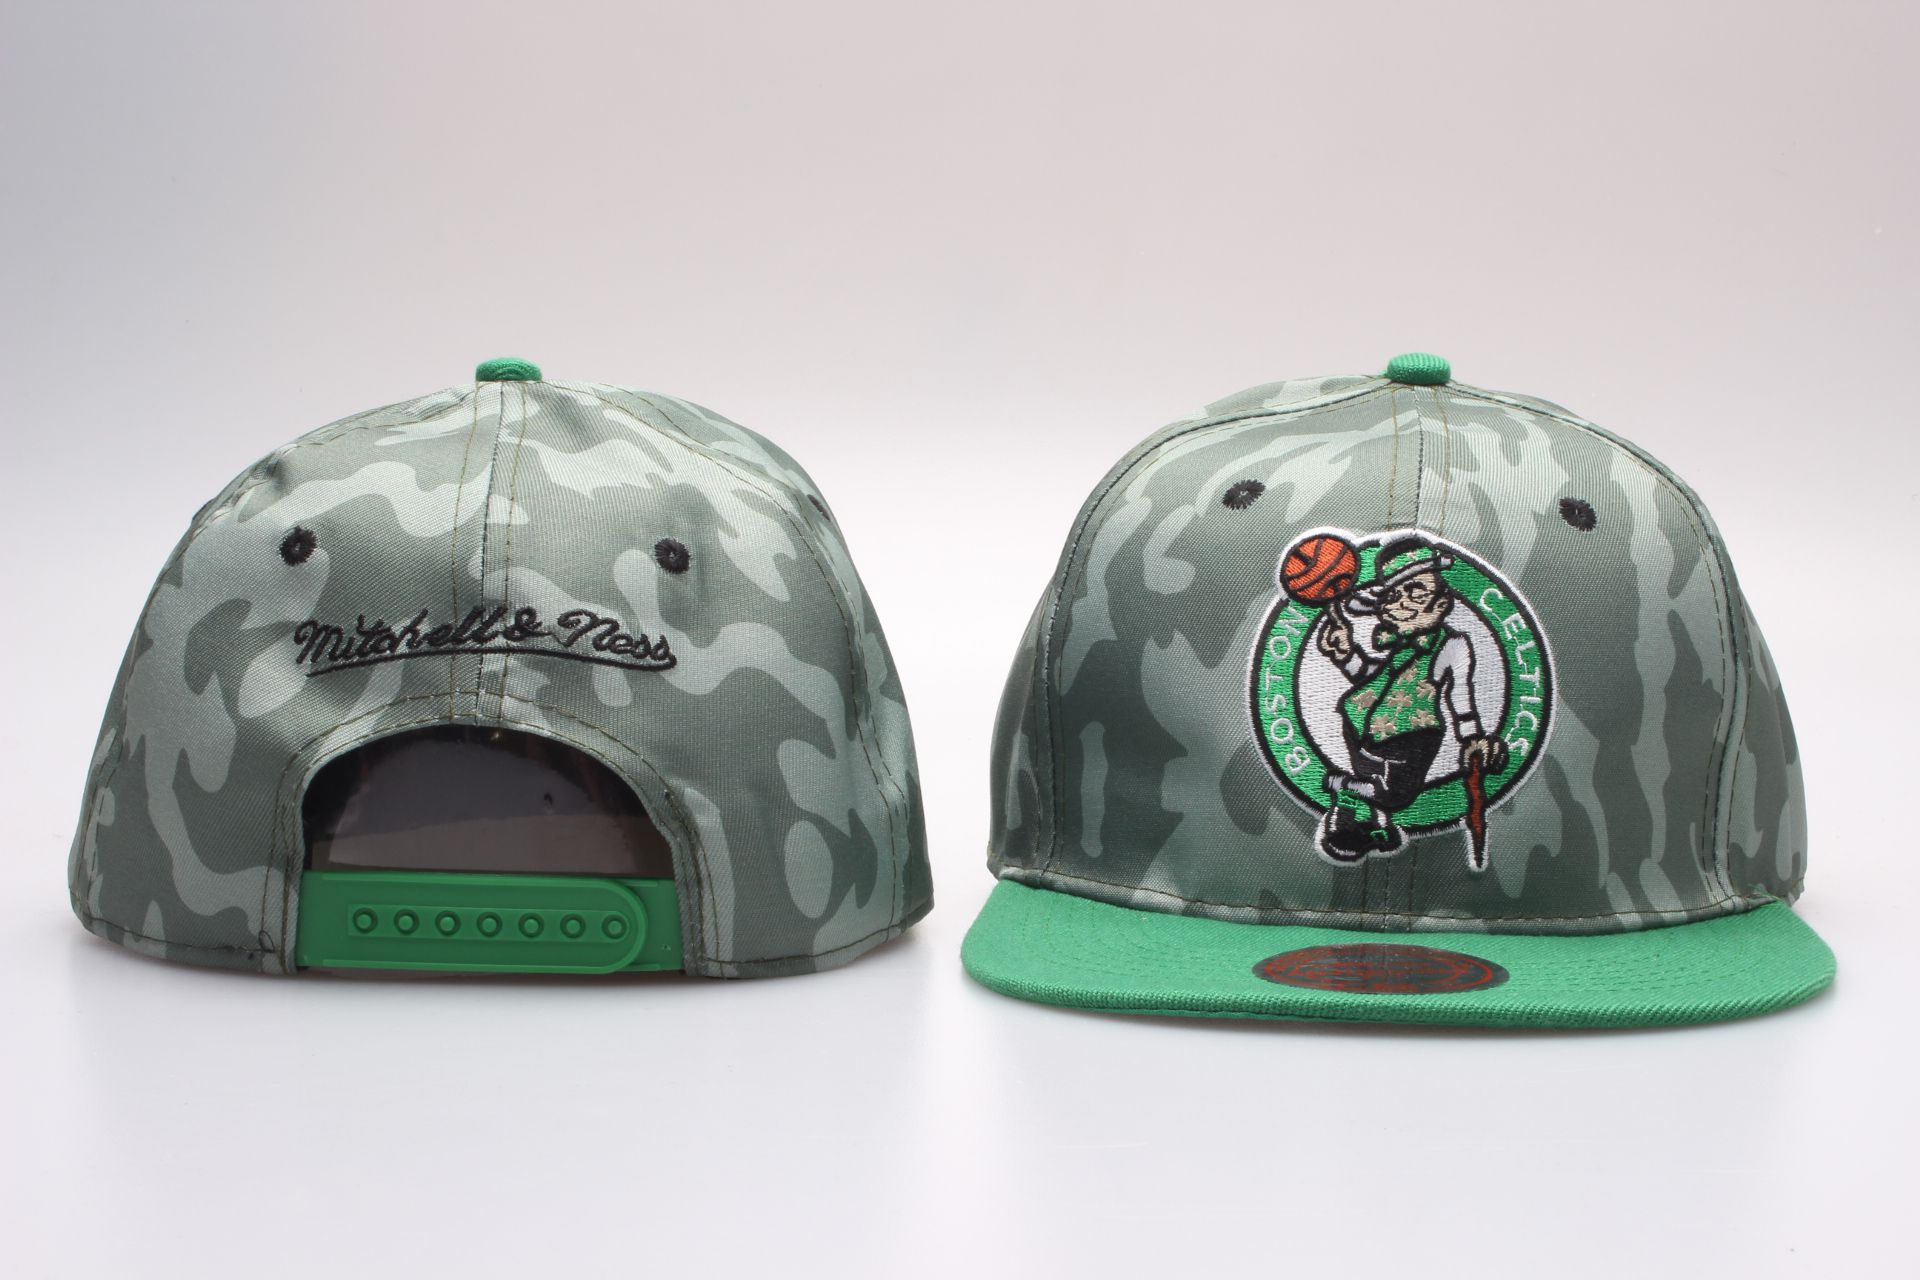 NBA Boston Celtics Snapback hat 20181125